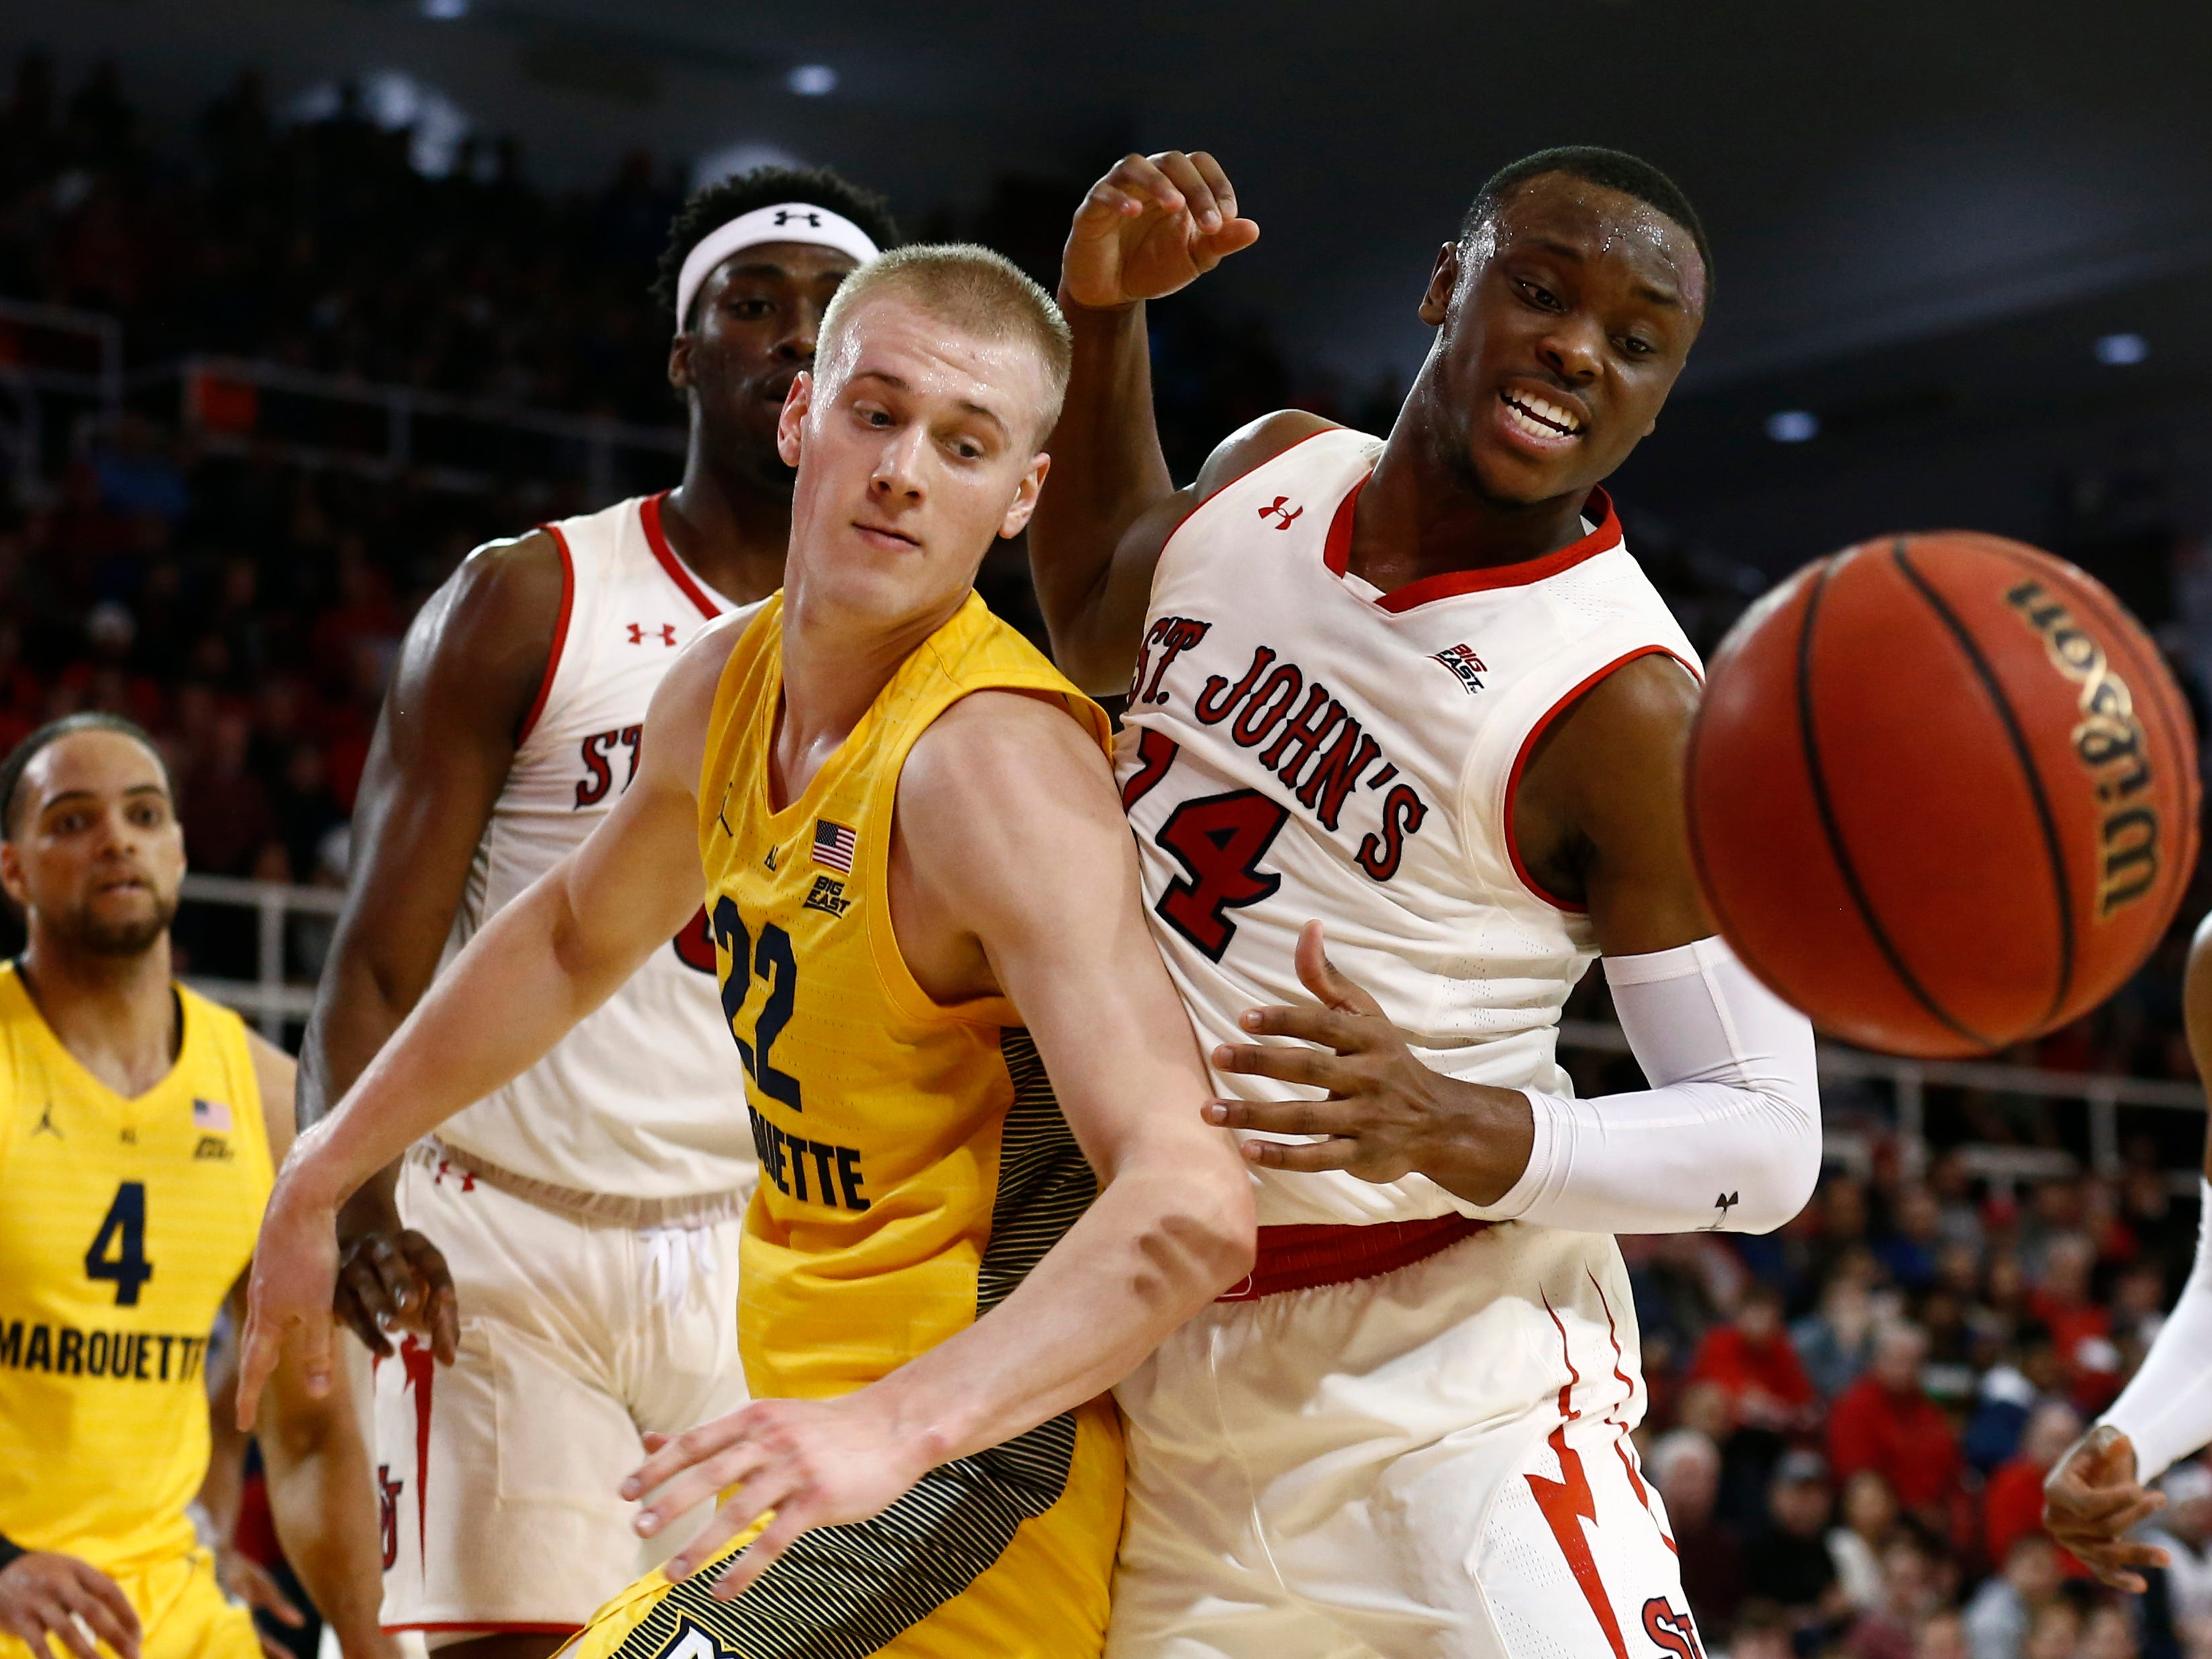 Jan 1, 2019; Queens, NY, USA; St. John's Red Storm guard Mustapha Heron (14) fights for possession of the ball against Marquette Golden Eagles forward Joey Hauser (22) in the first half at Carnesecca Arena. Mandatory Credit: Nicole Sweet-USA TODAY Sports